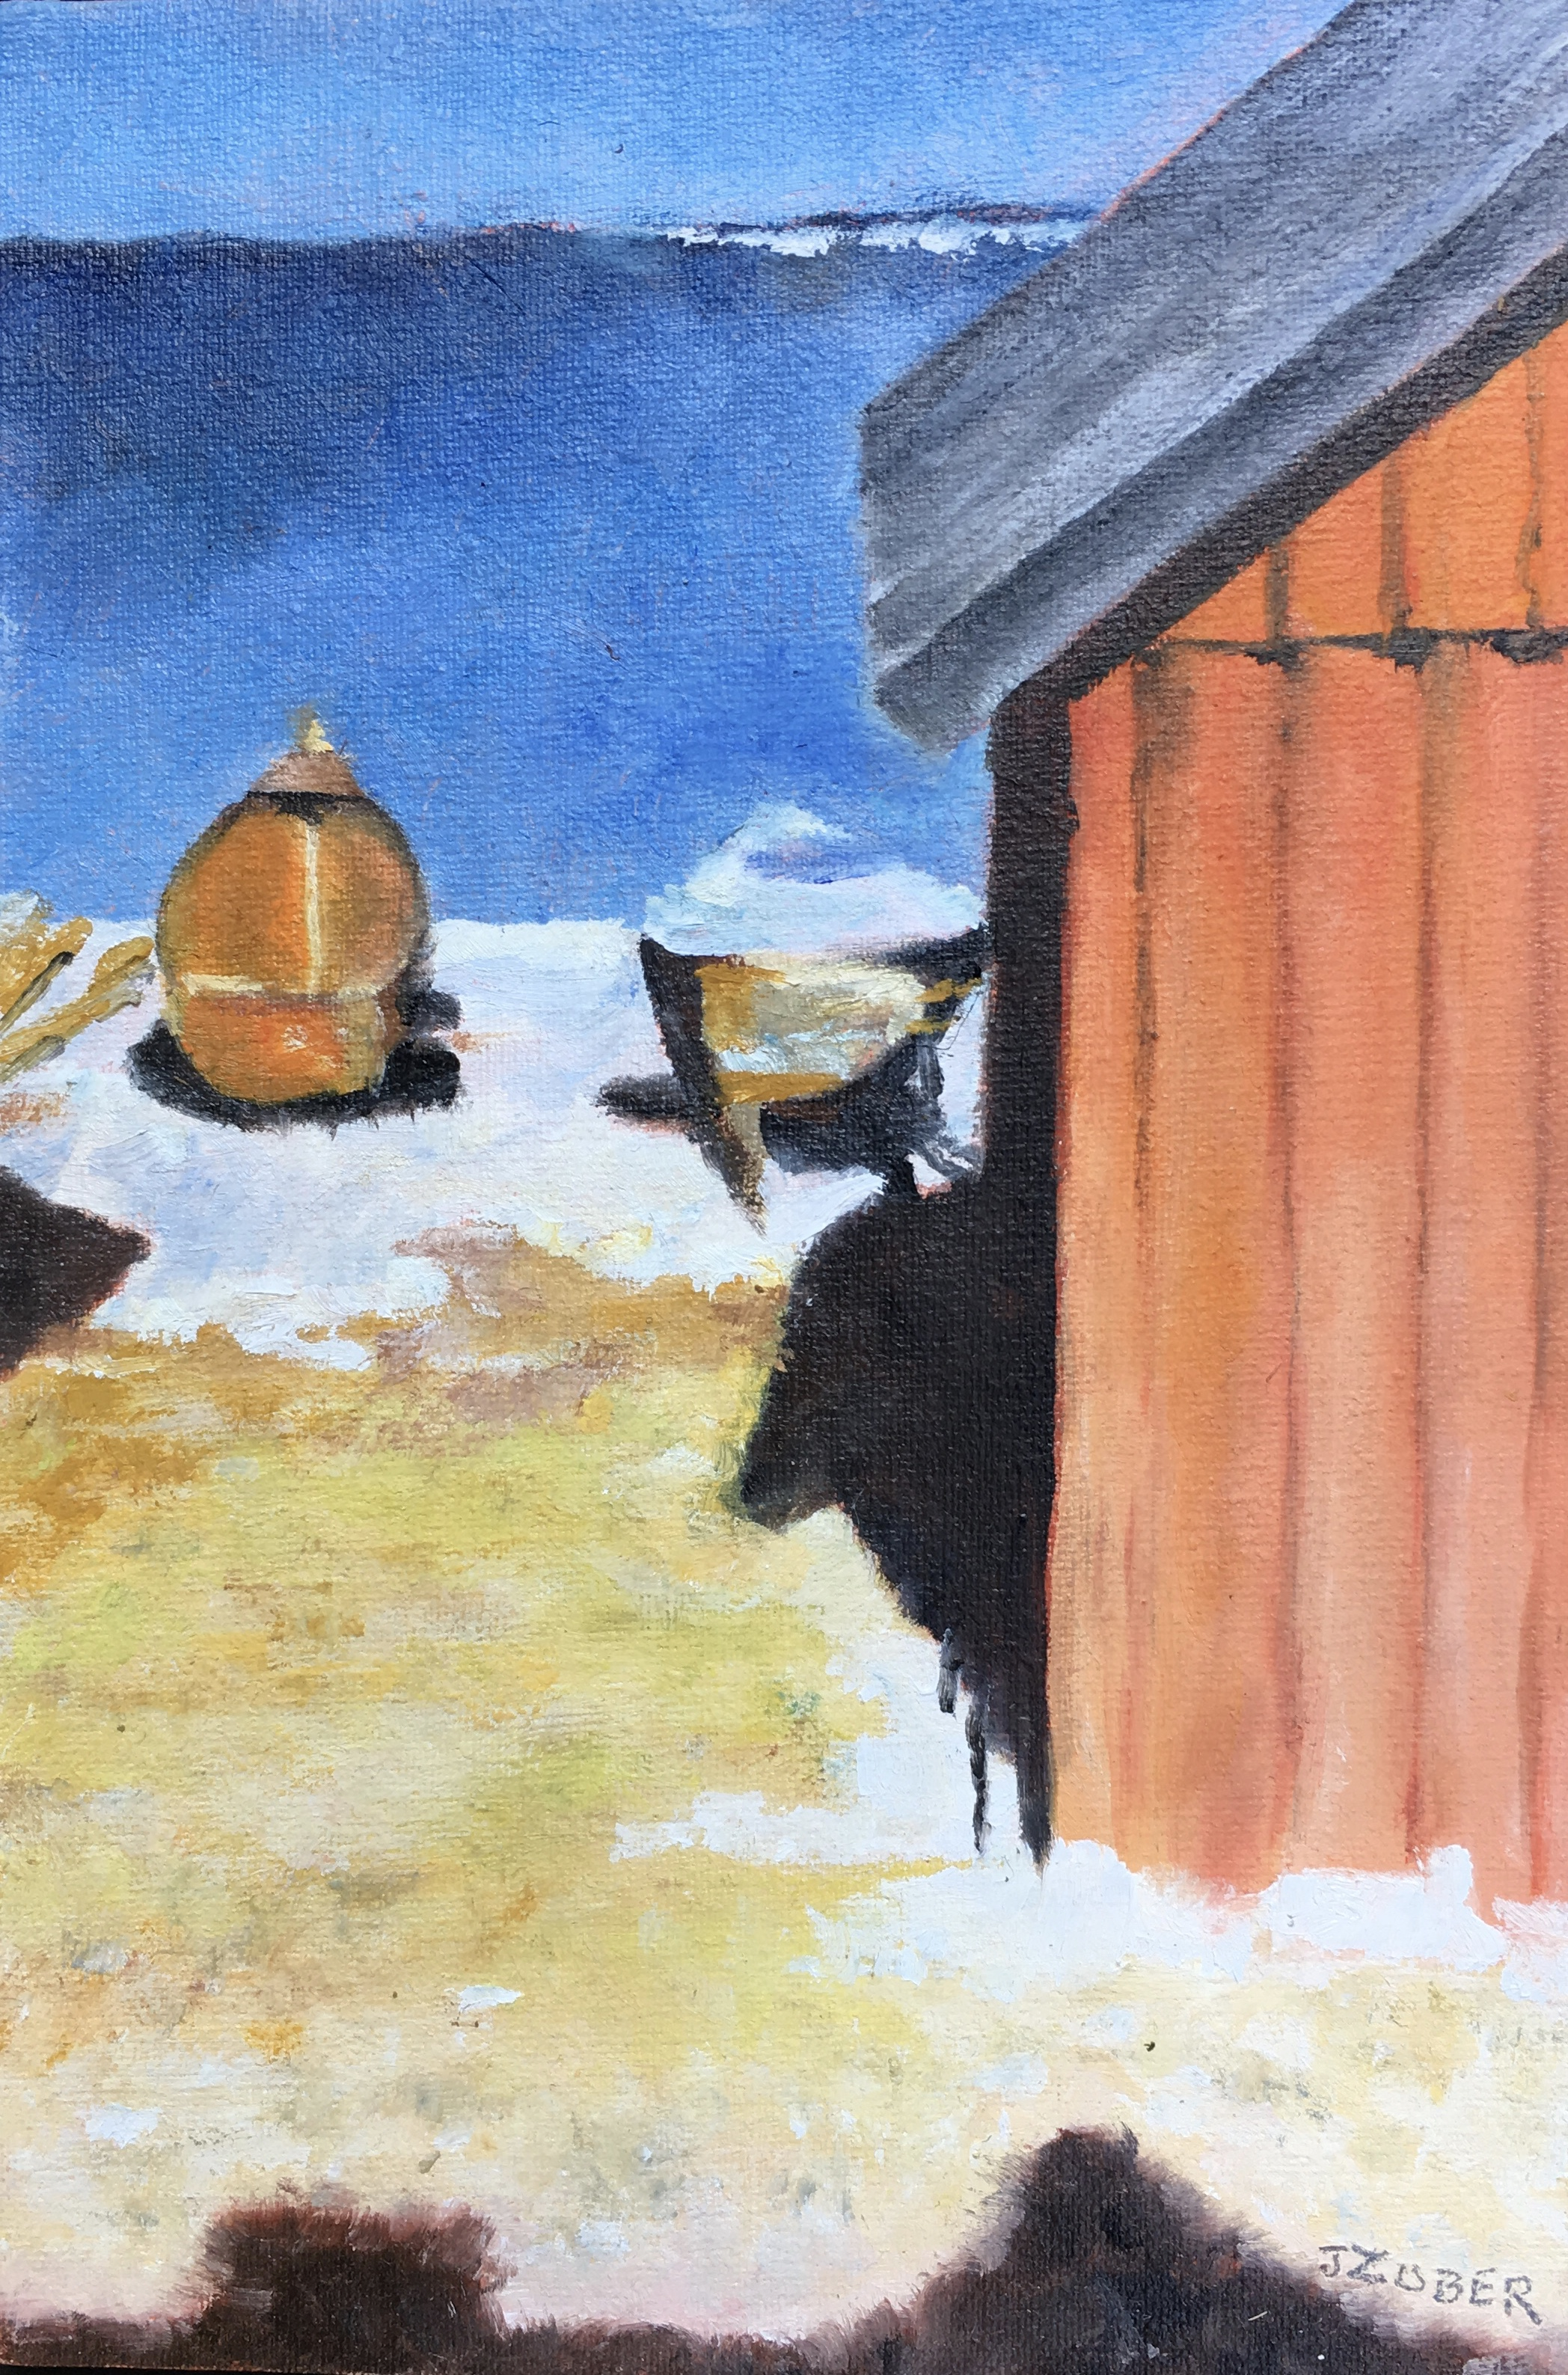 miniature oil painting of house, boats on island in Baltic Sea